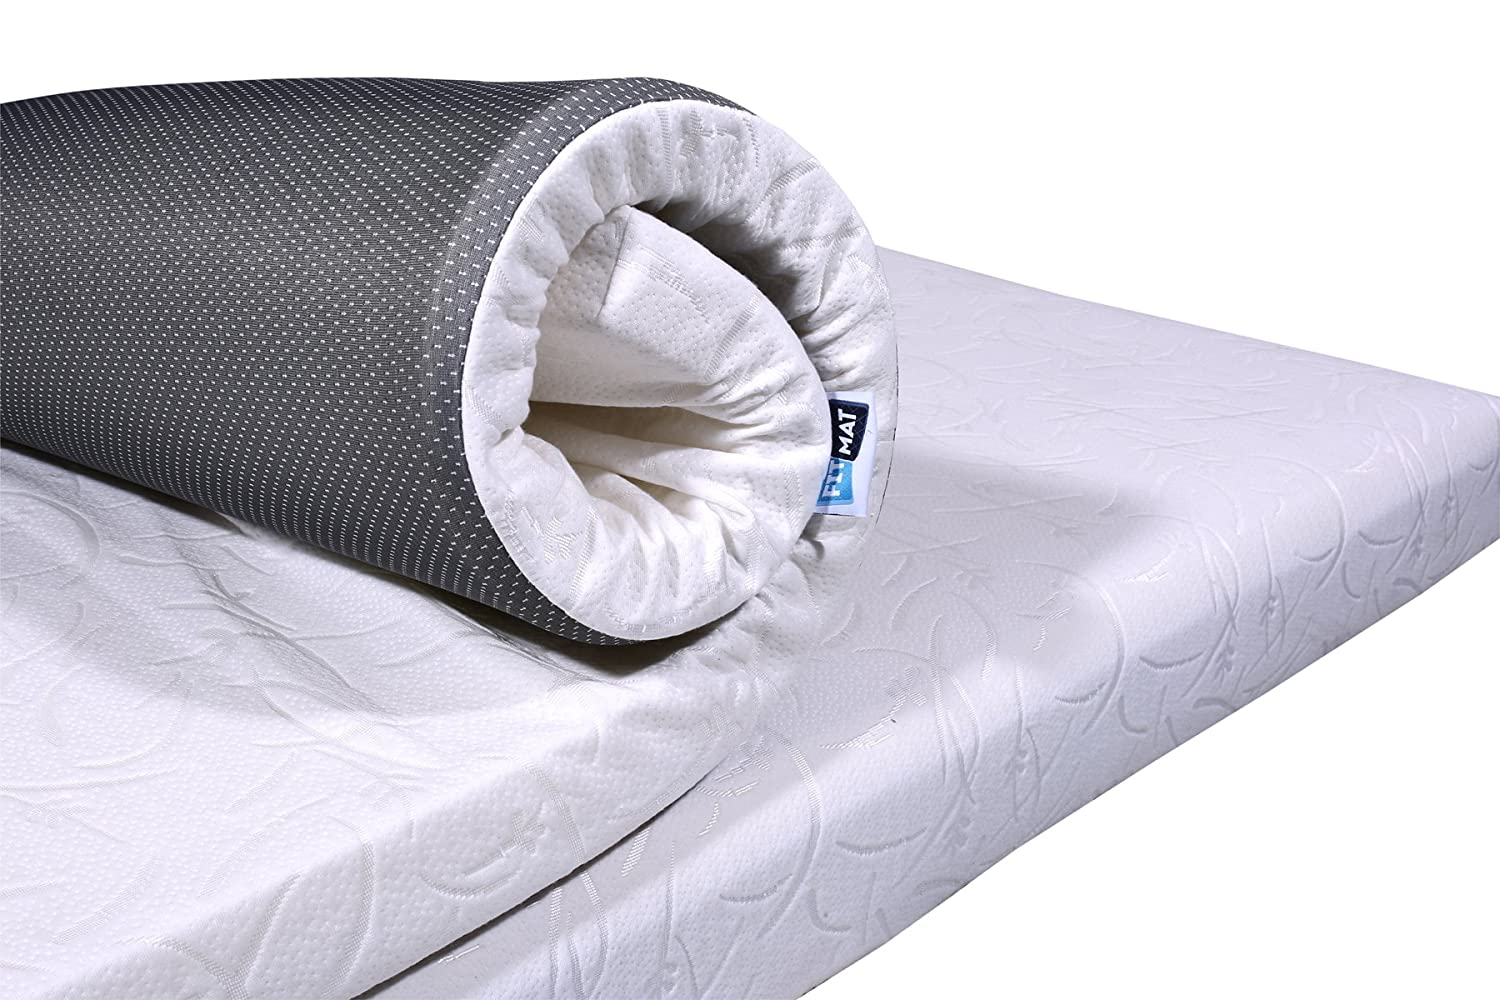 Tips for Picking Out a New Mattress